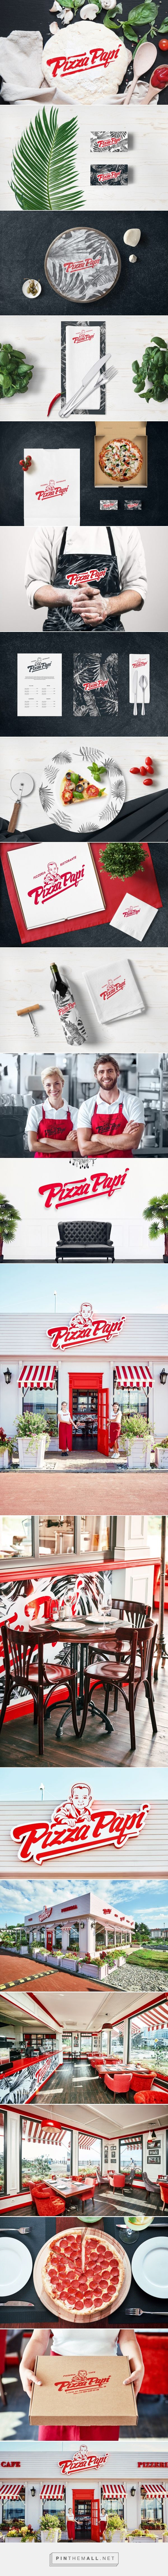 PIZZA PAPI Ristorante Branding by Alex Smart | Fivestar Branding Agency – Design and Branding Agency & Curated Inspiration Gallery